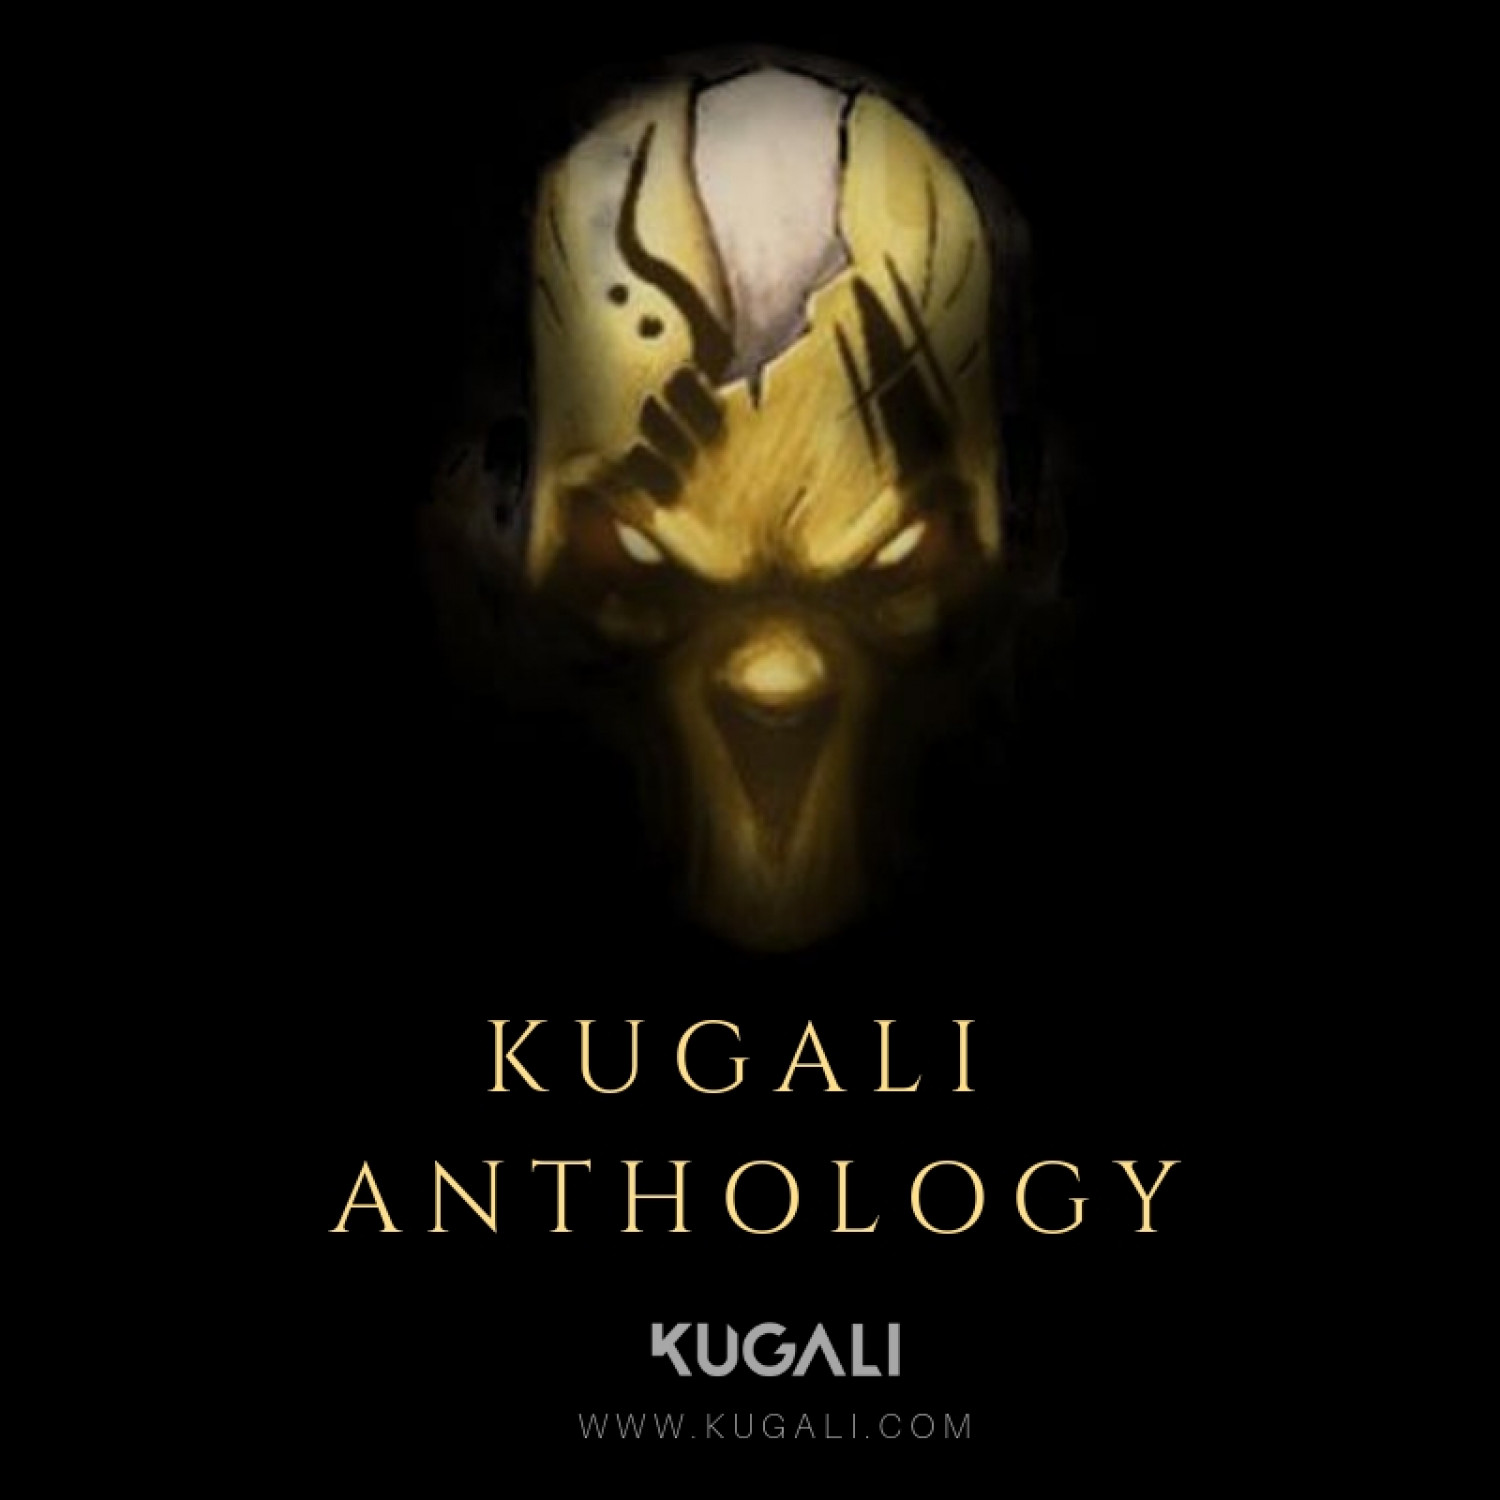 Science Fiction and Fantasy (African Anthologies) — Kugali Anthology Infographic